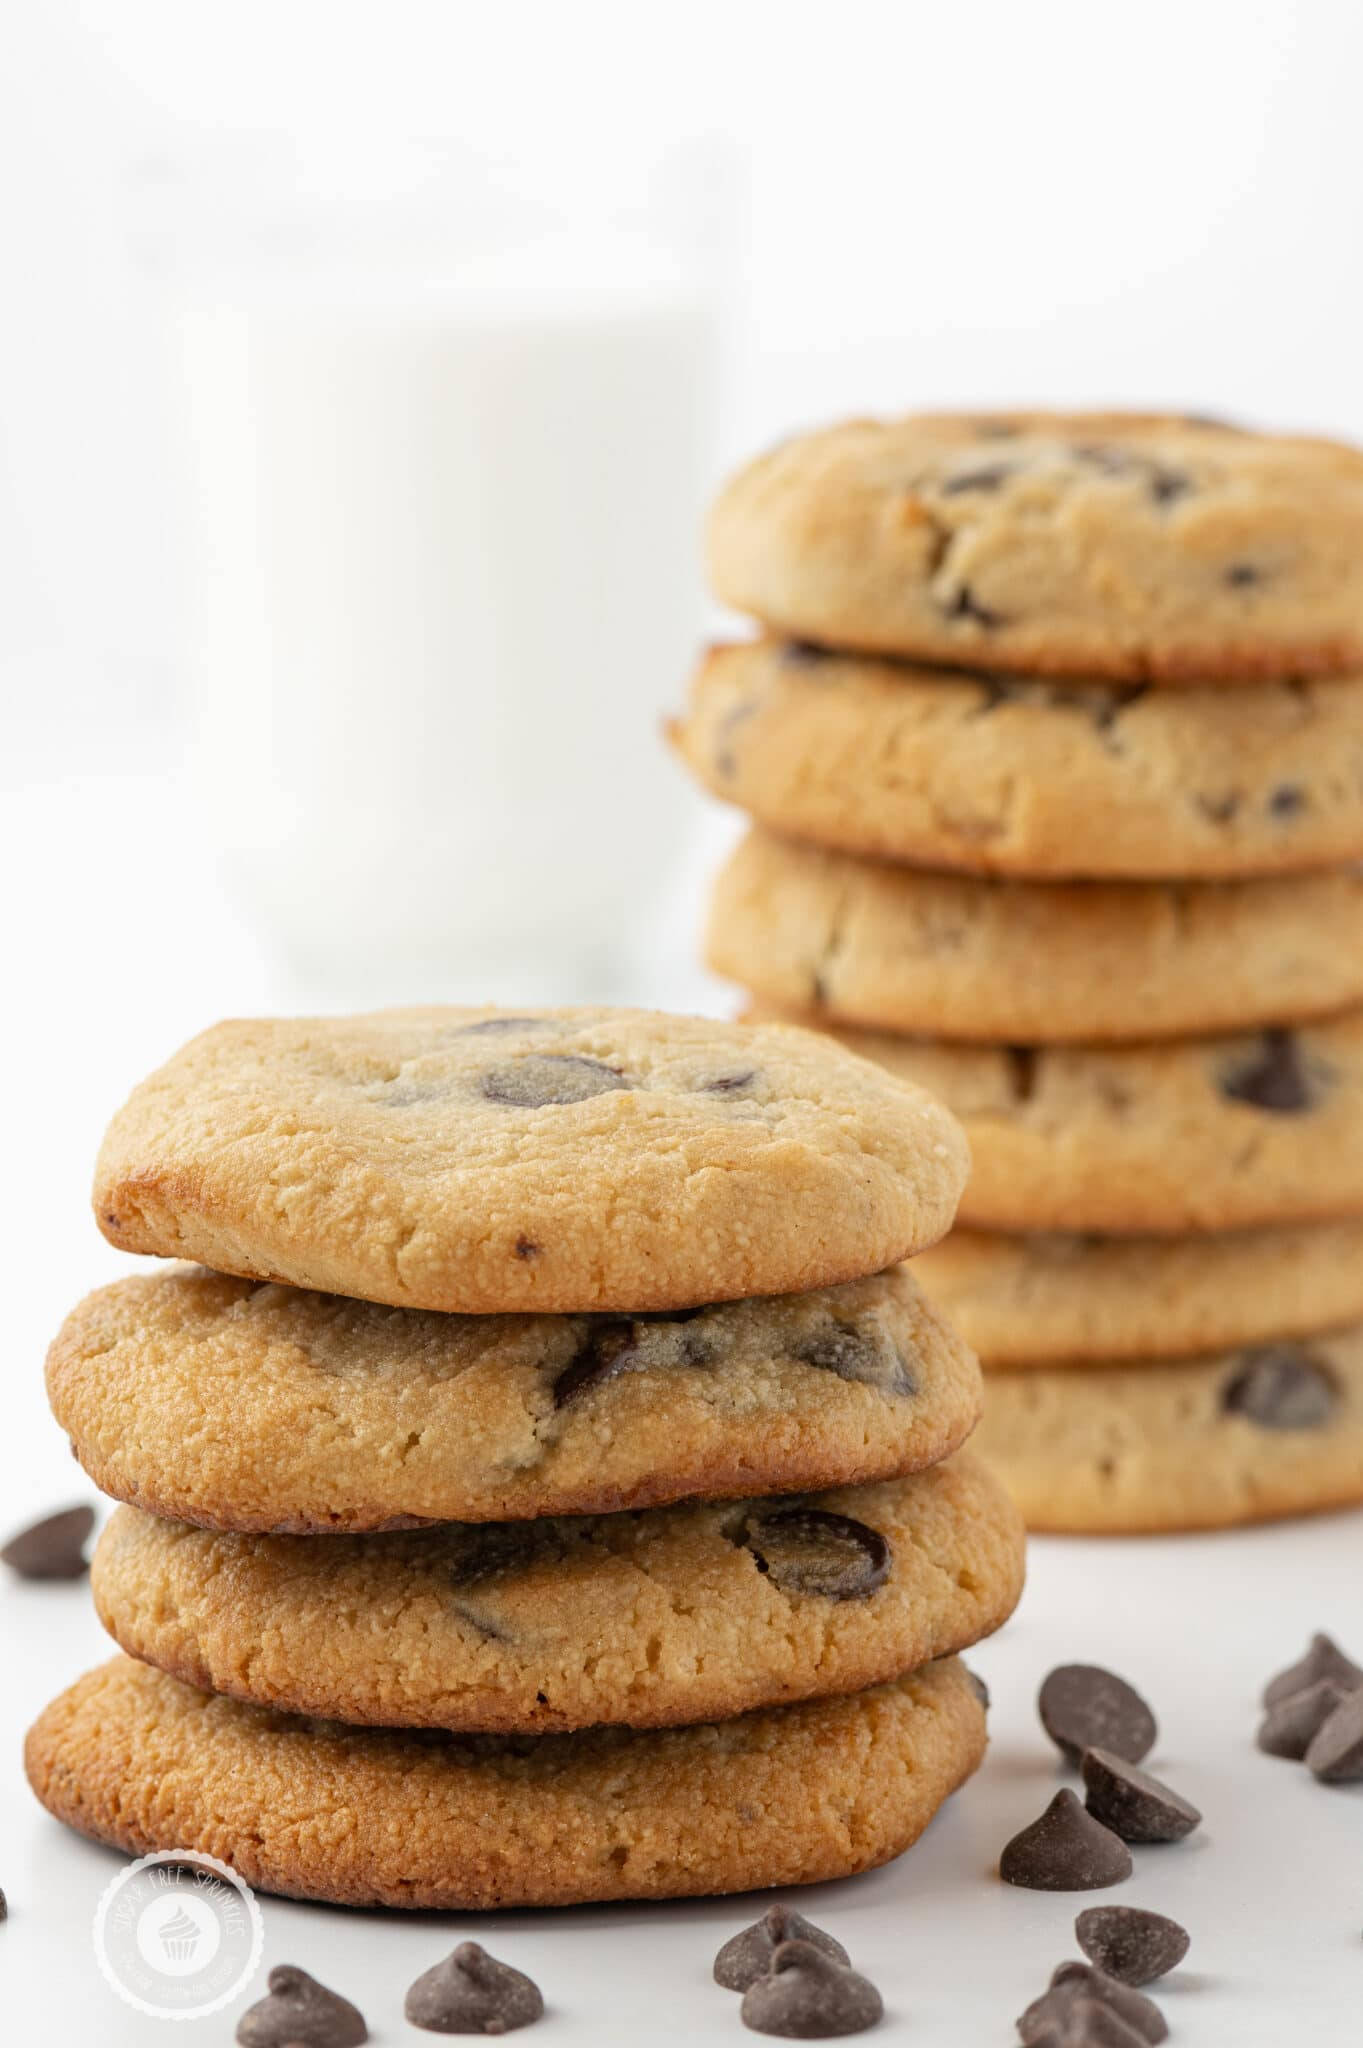 Stacks of keto chocolate chip cookies on a white background with scattered chocolate chips and a glass in the background filled with almond milk.